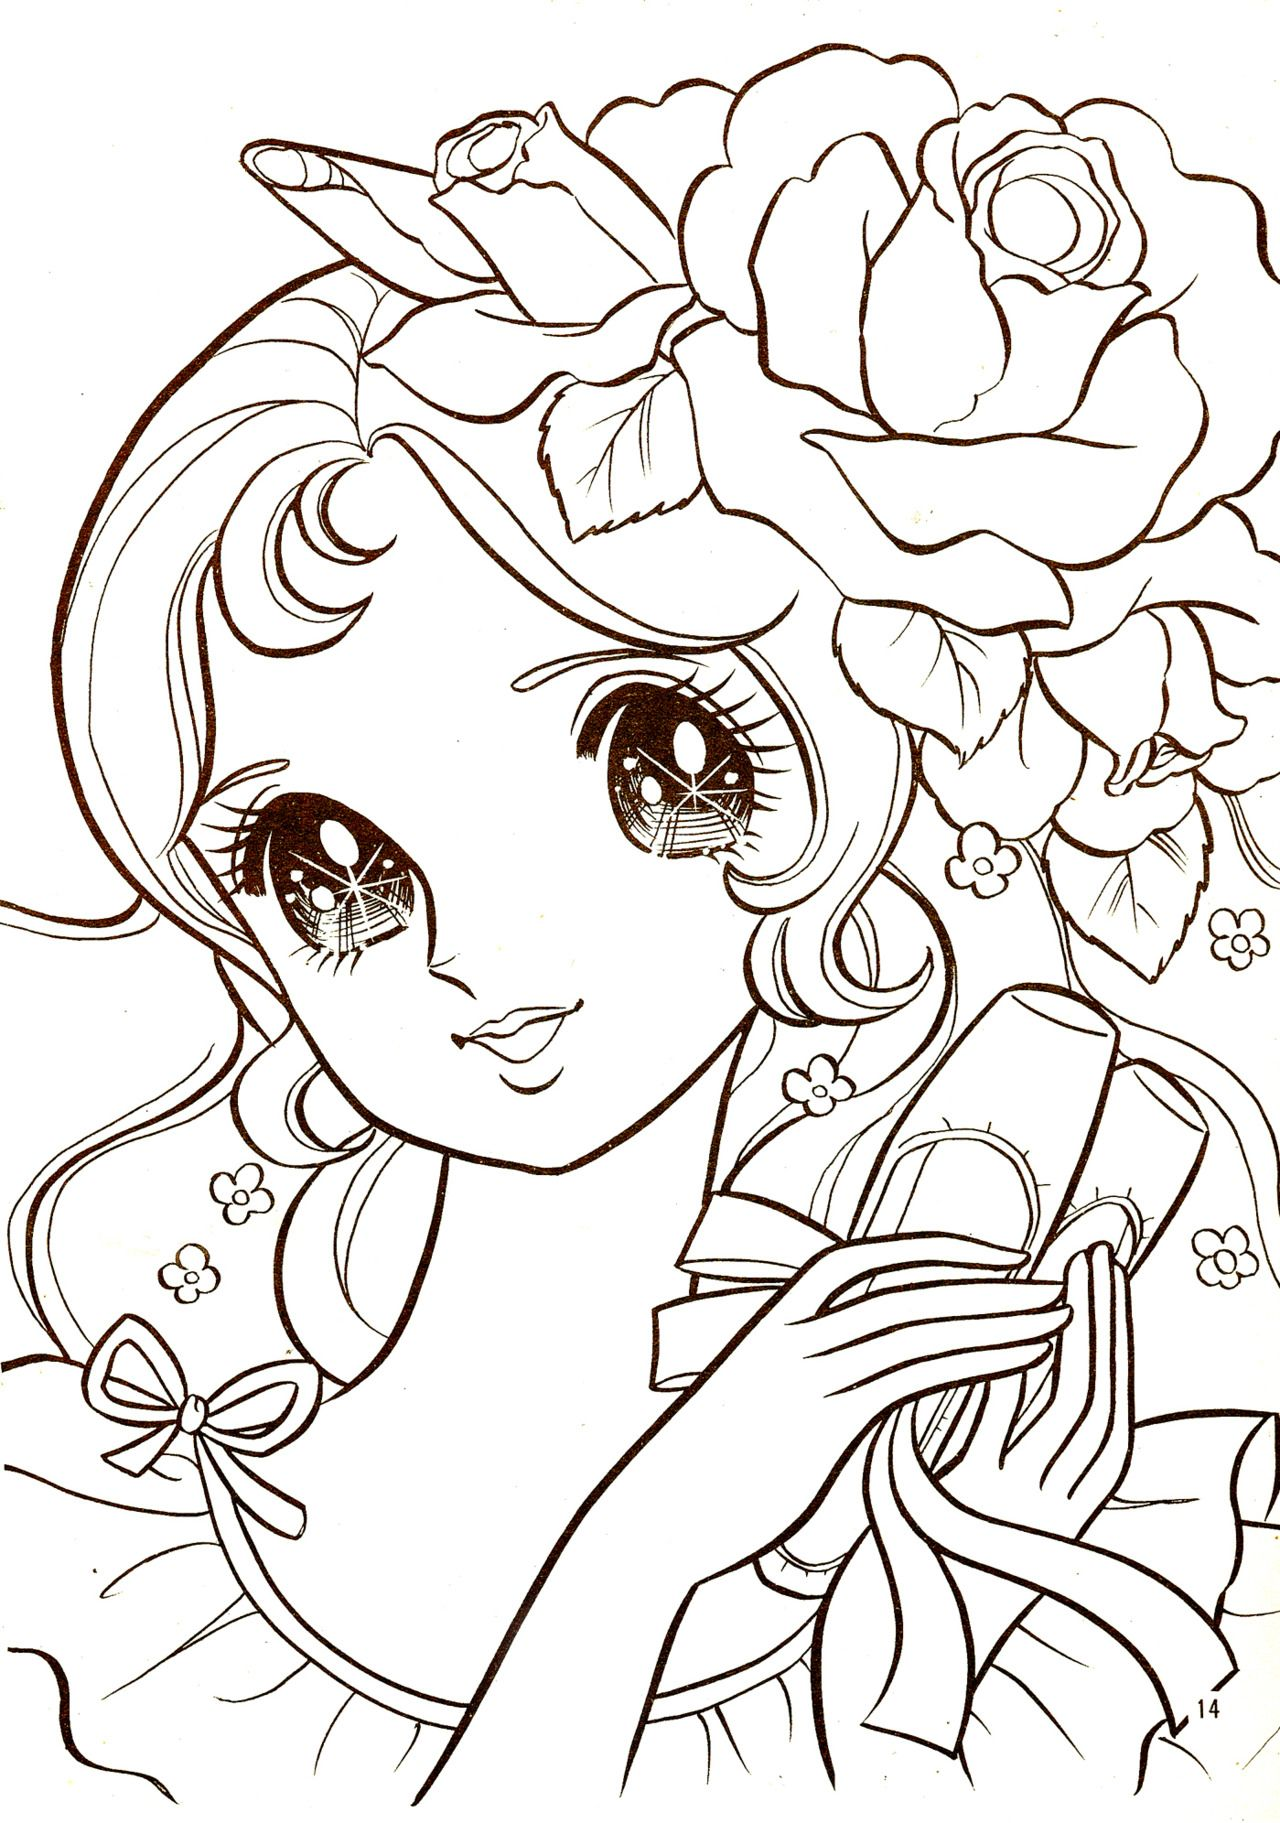 Shoujo Coloring / Coloring Pages Adult | Shoujo Coloring ...